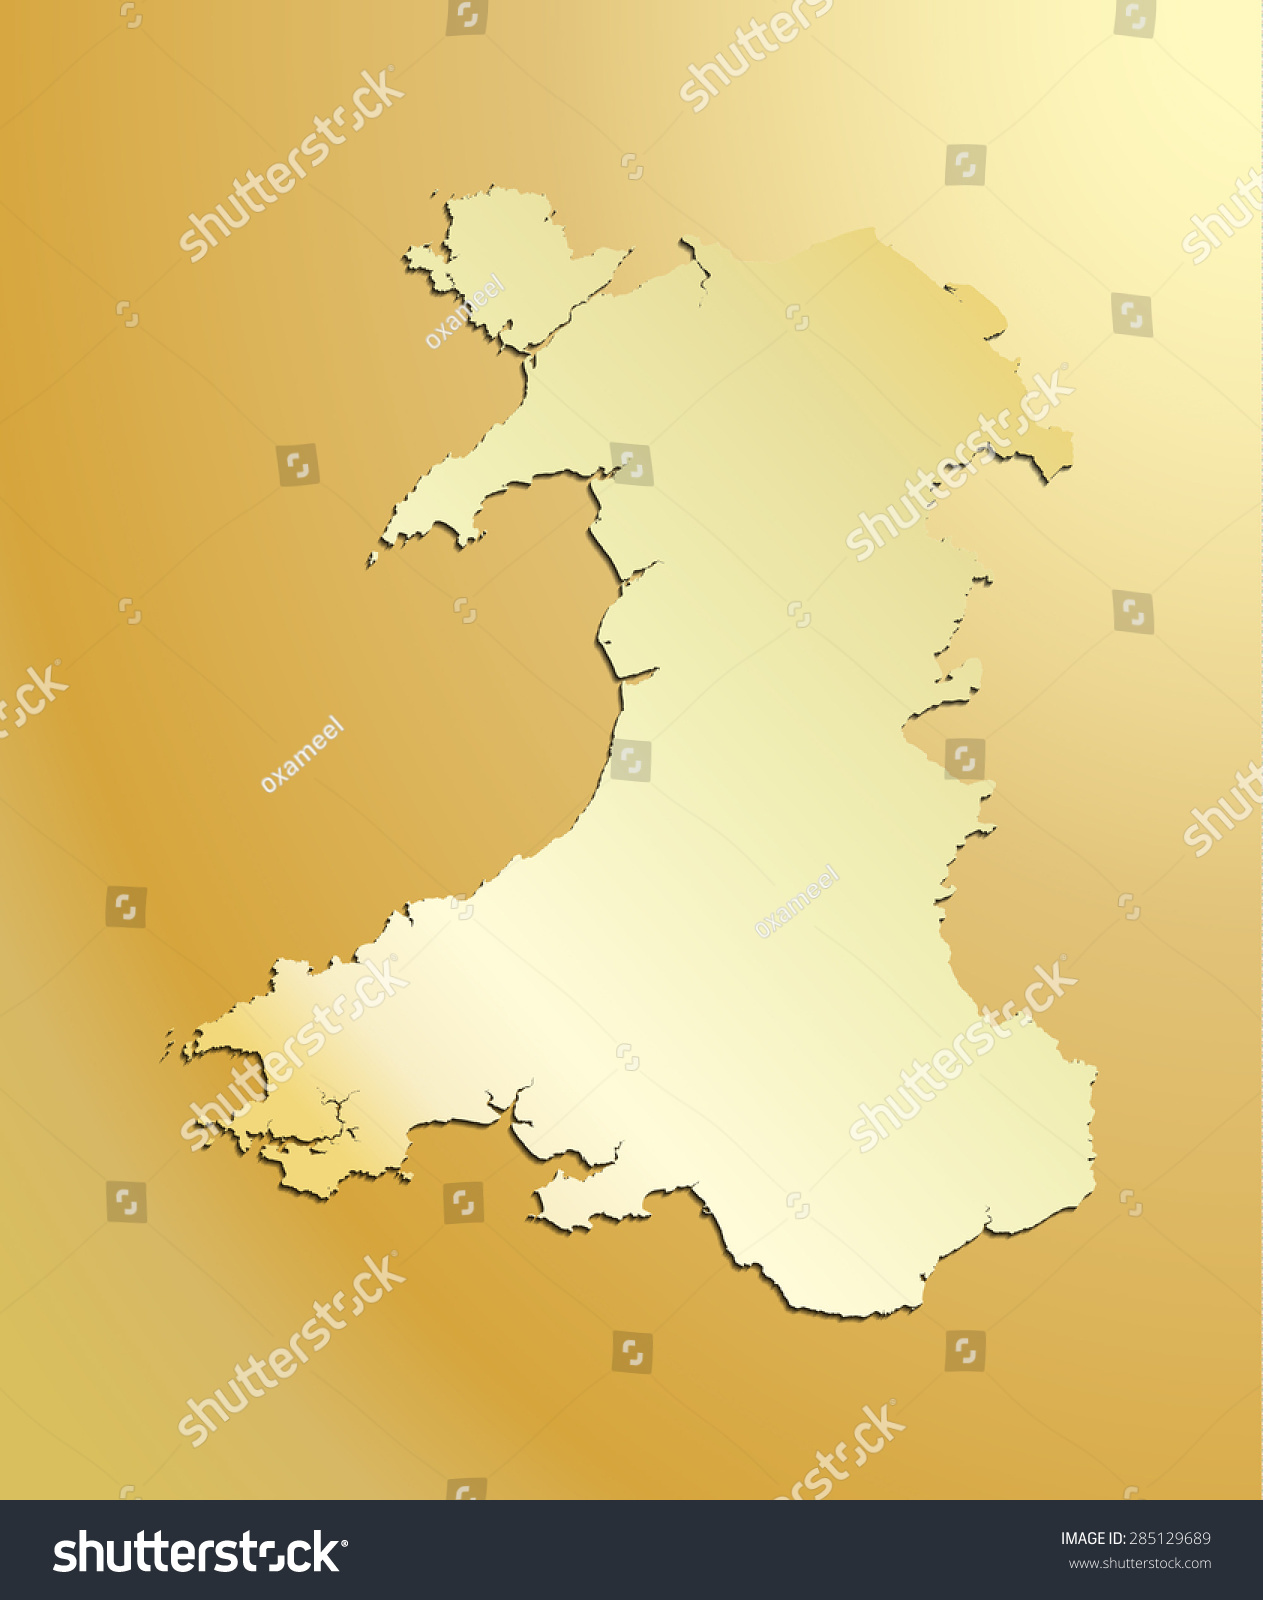 Detailed Map Of Wales Uk.Gold Map Wales Uk Stock Vector Royalty Free 285129689 Shutterstock